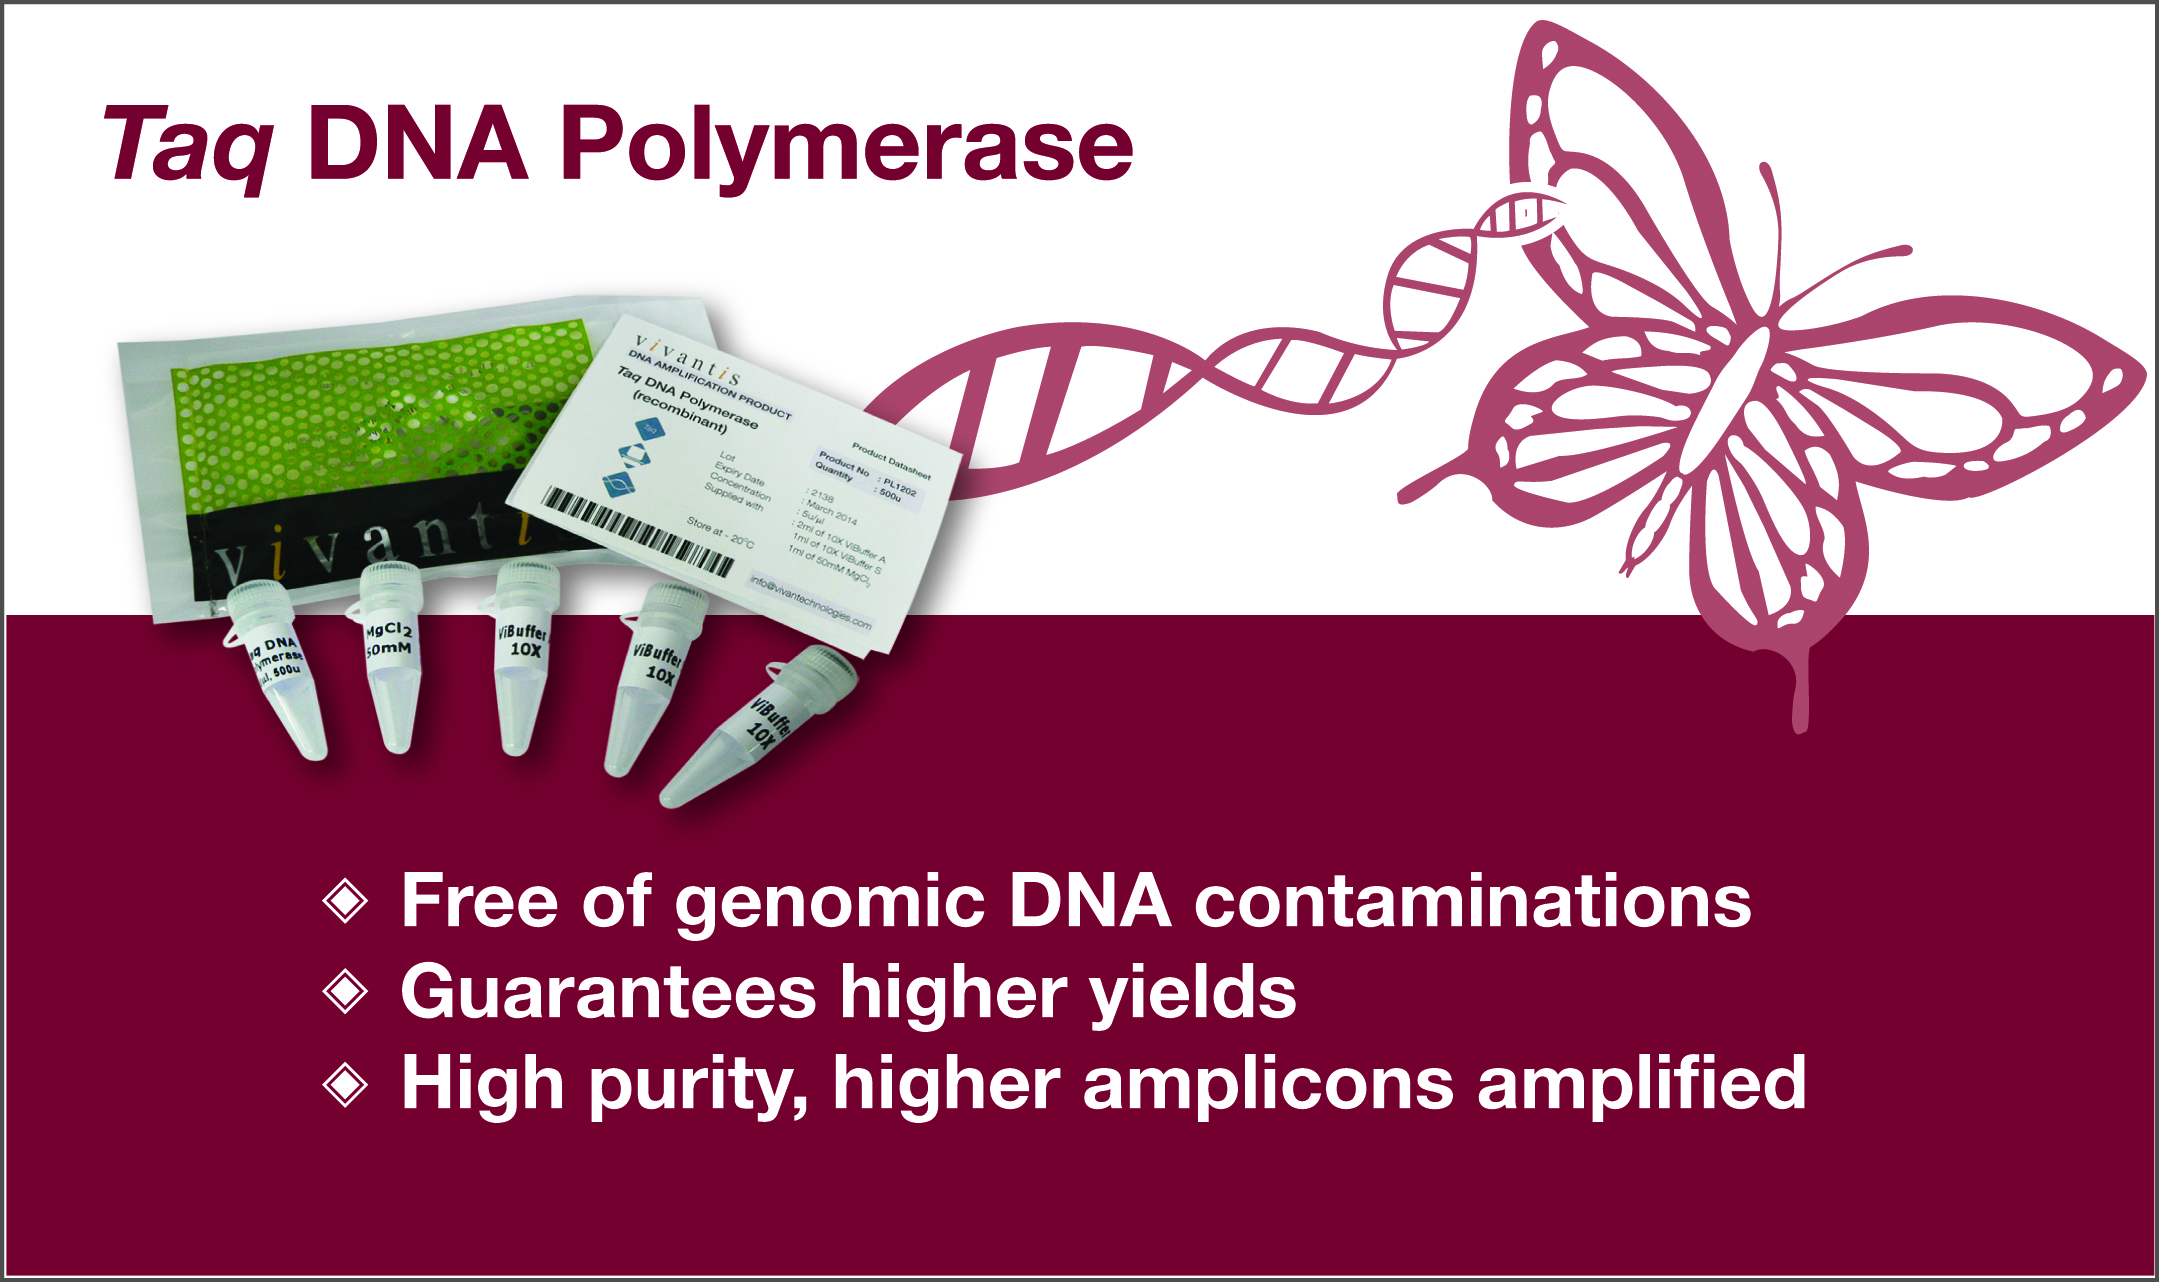 Taq DNA Polymerase